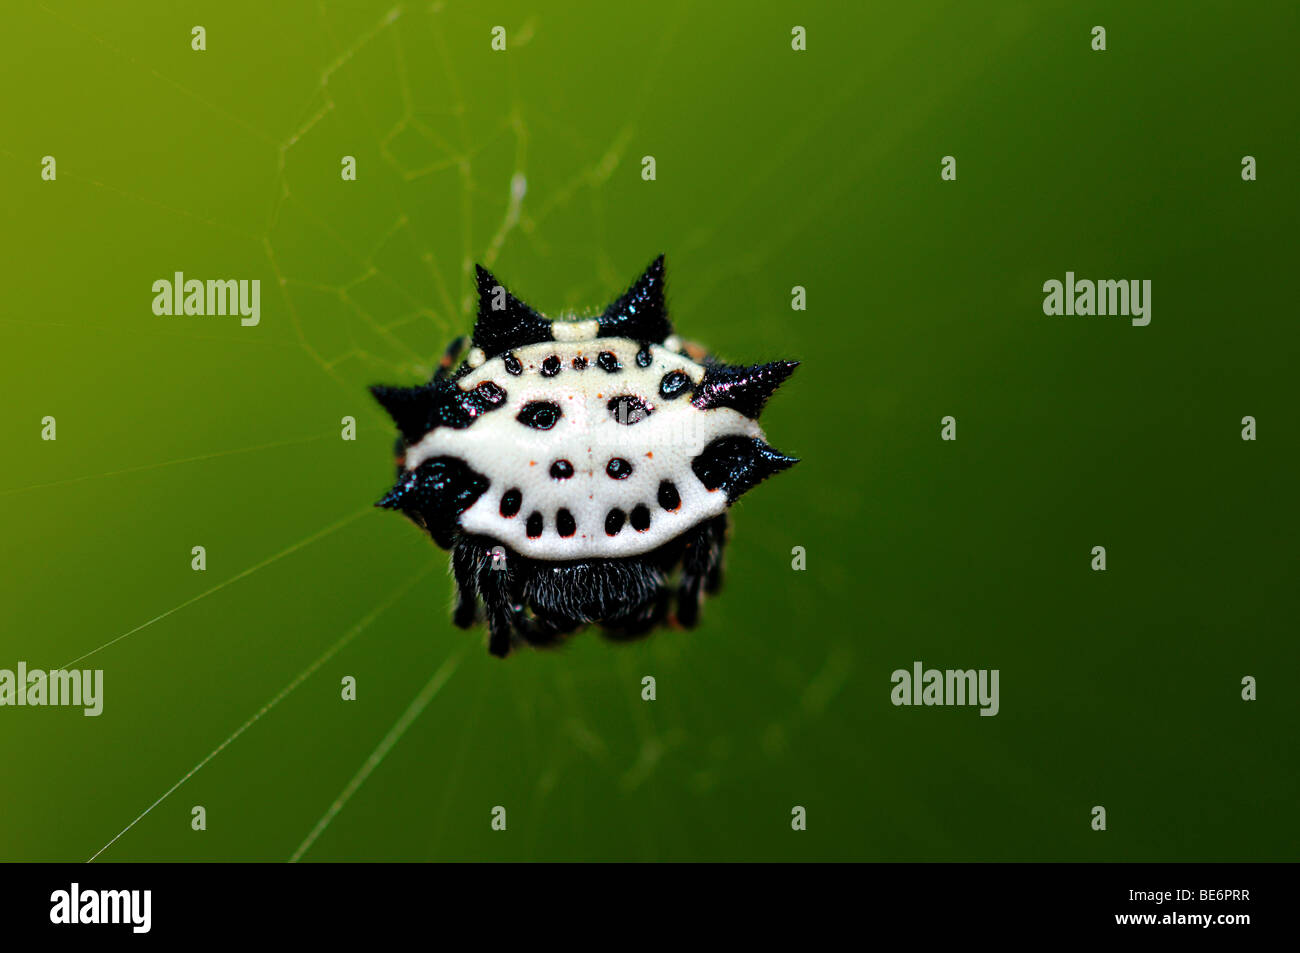 A crab-like spiny orb weaver spider. - Stock Image